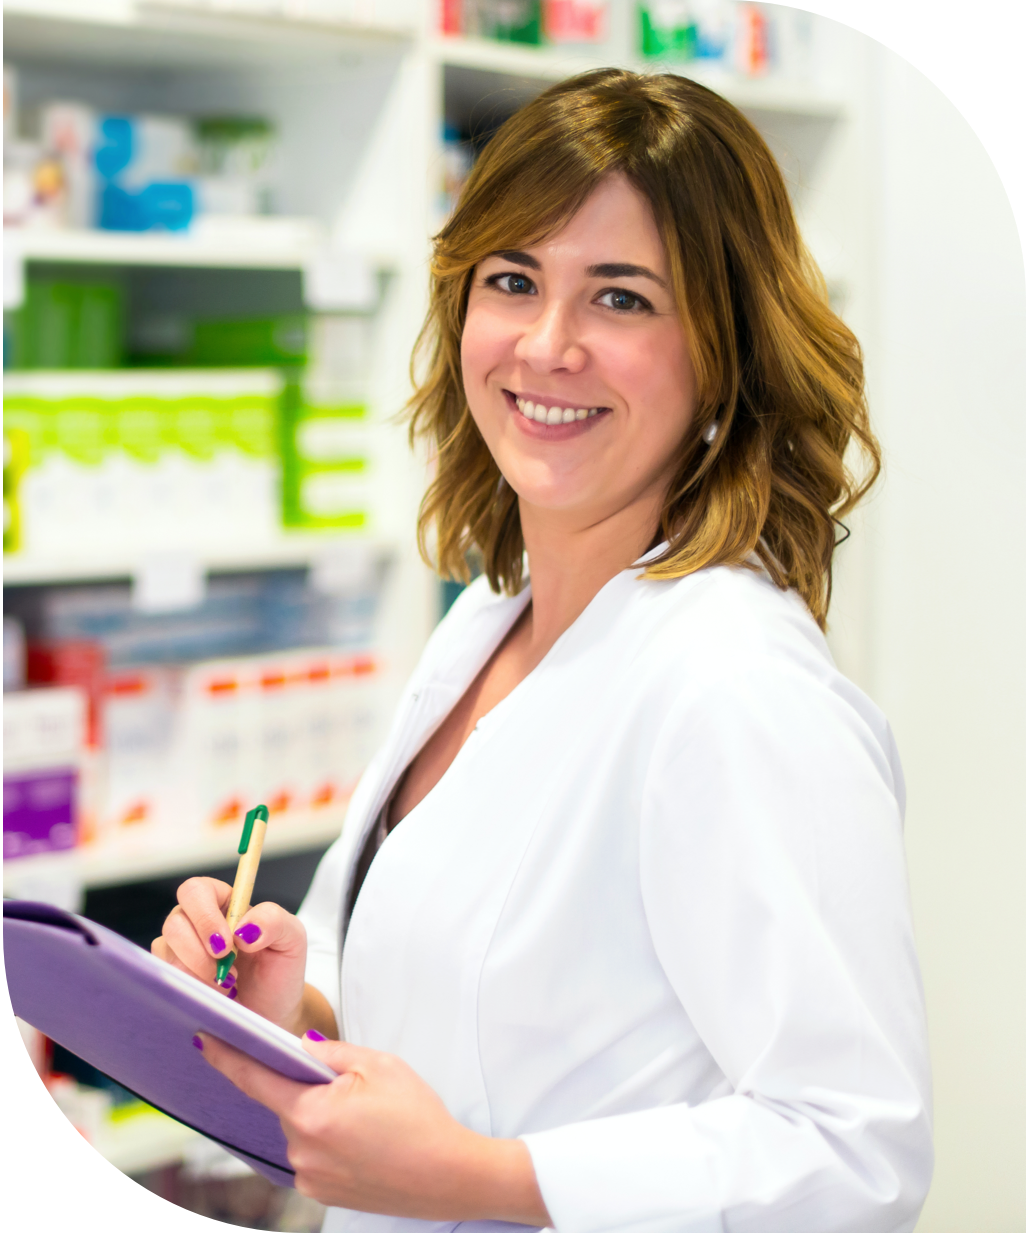 Pharmacist-Financial Planning & Investment Management Rochester, MN PharmD Financial Planning, LLC